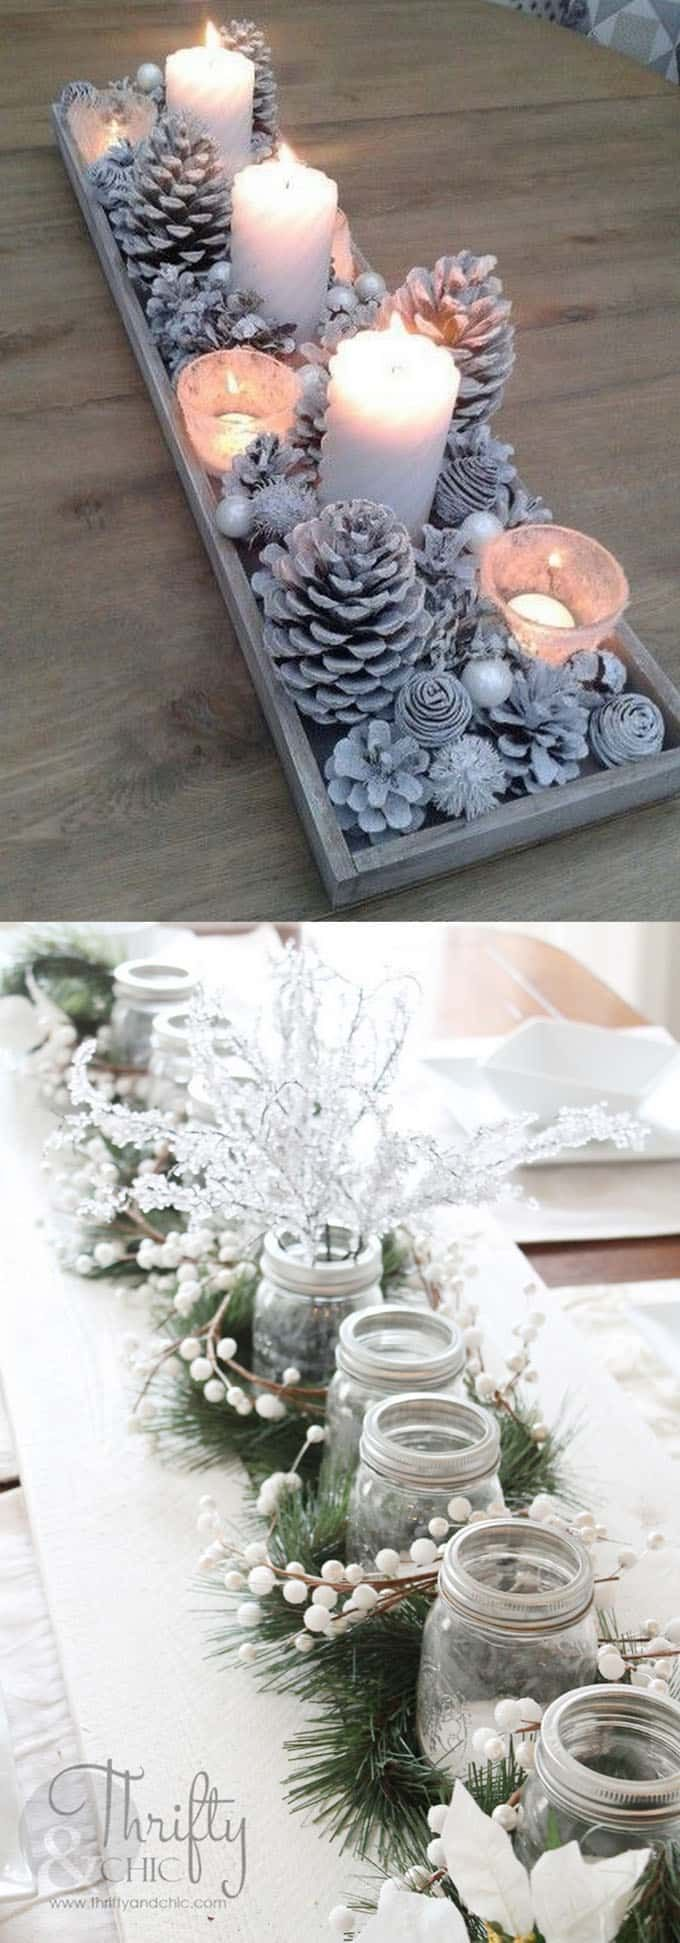 27 Beautiful & Simple DIY Thanksgiving and Christmas Table Decorations & Centerpieces